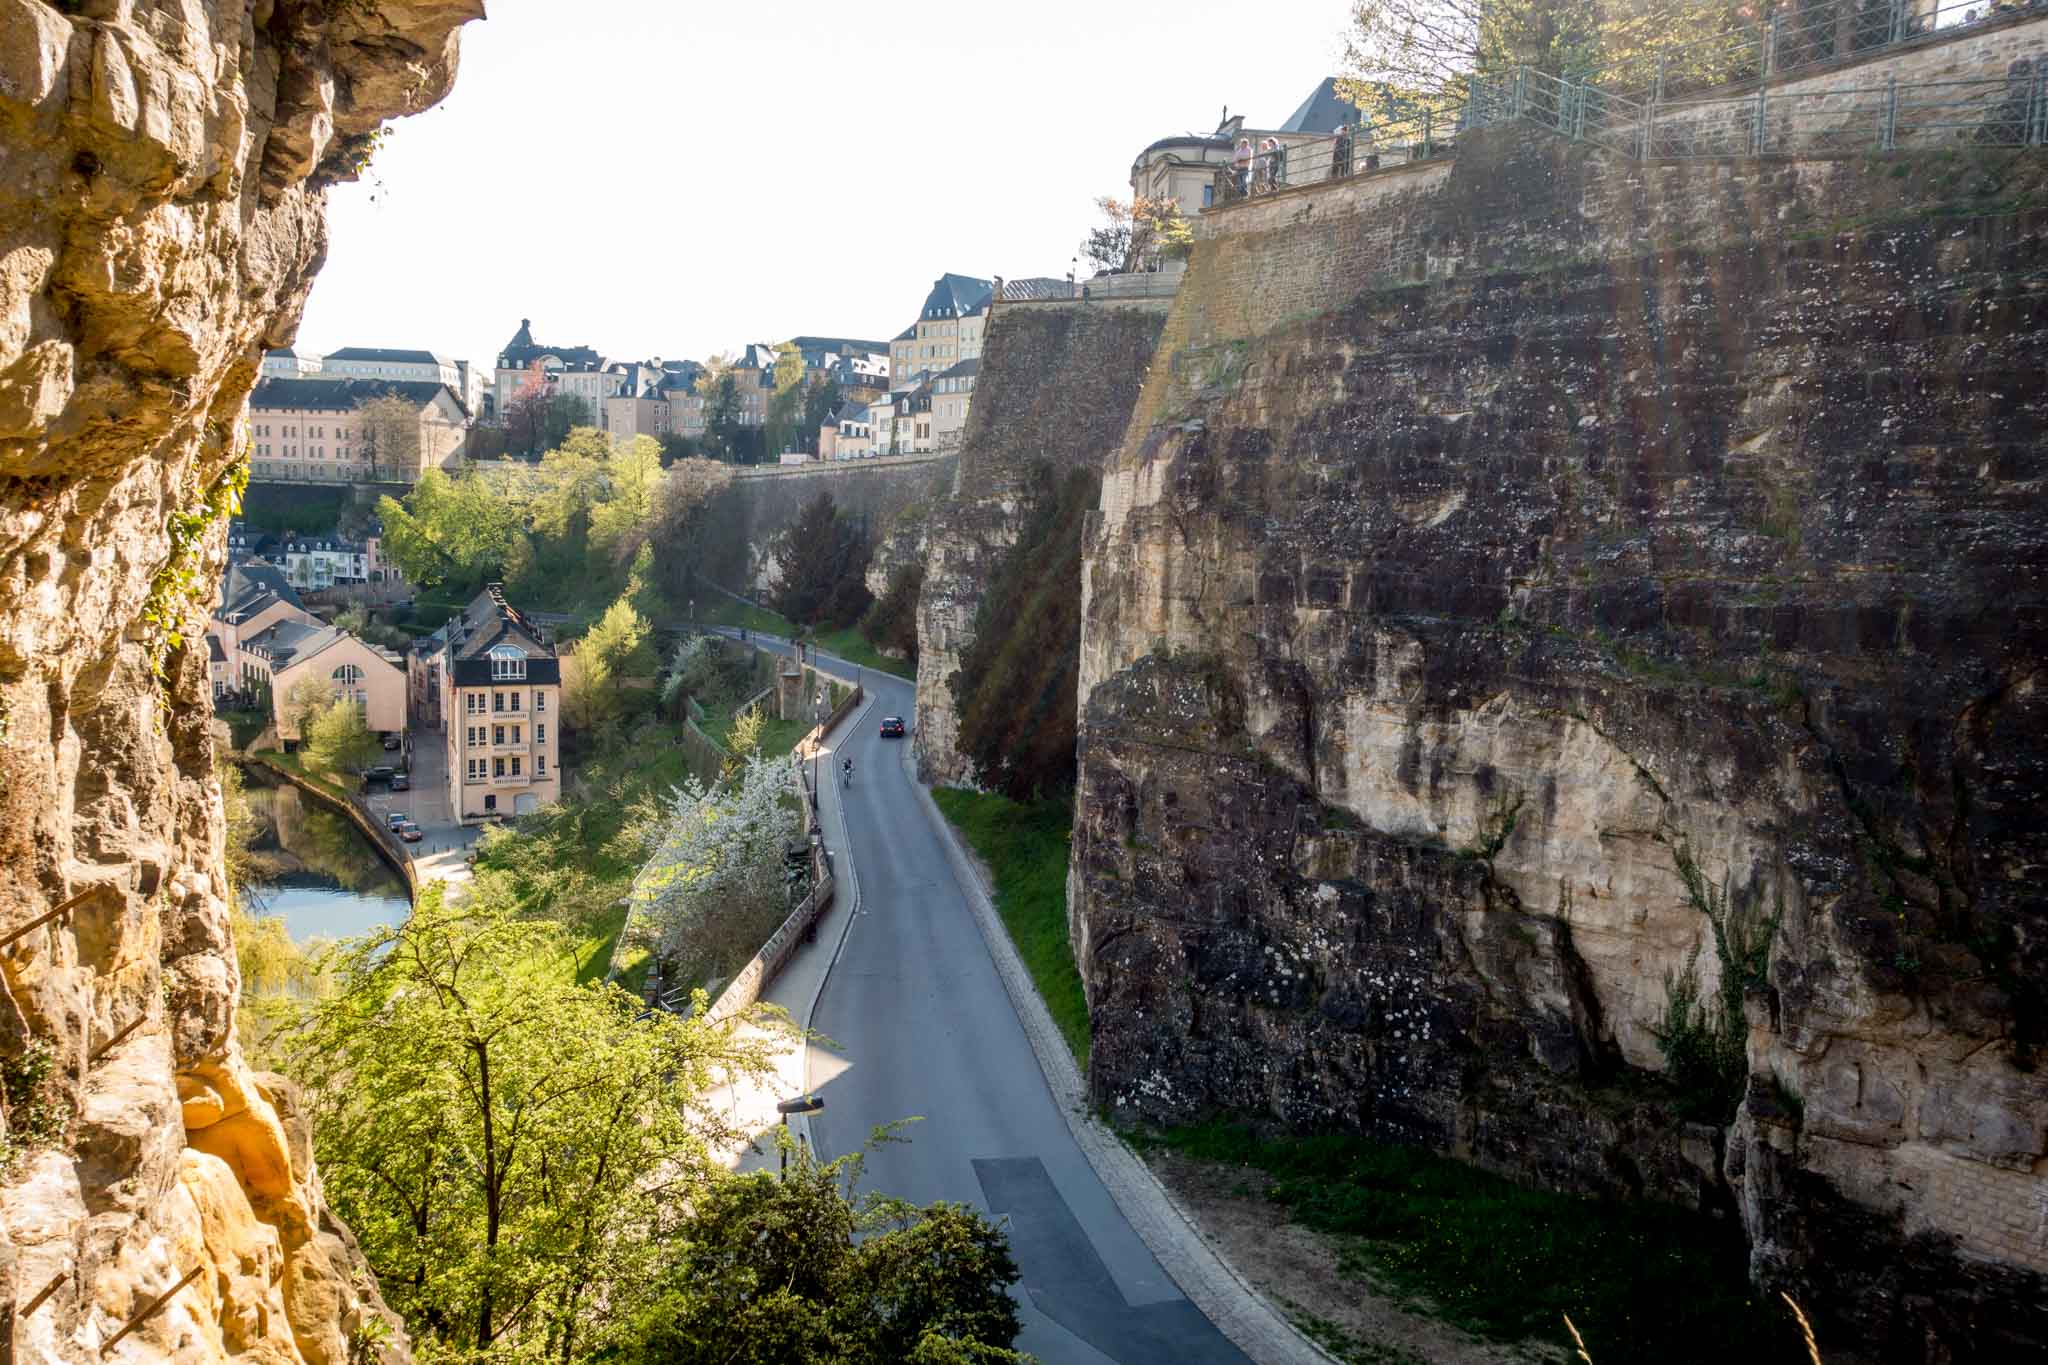 View of road between upper and lower parts of Luxembourg City